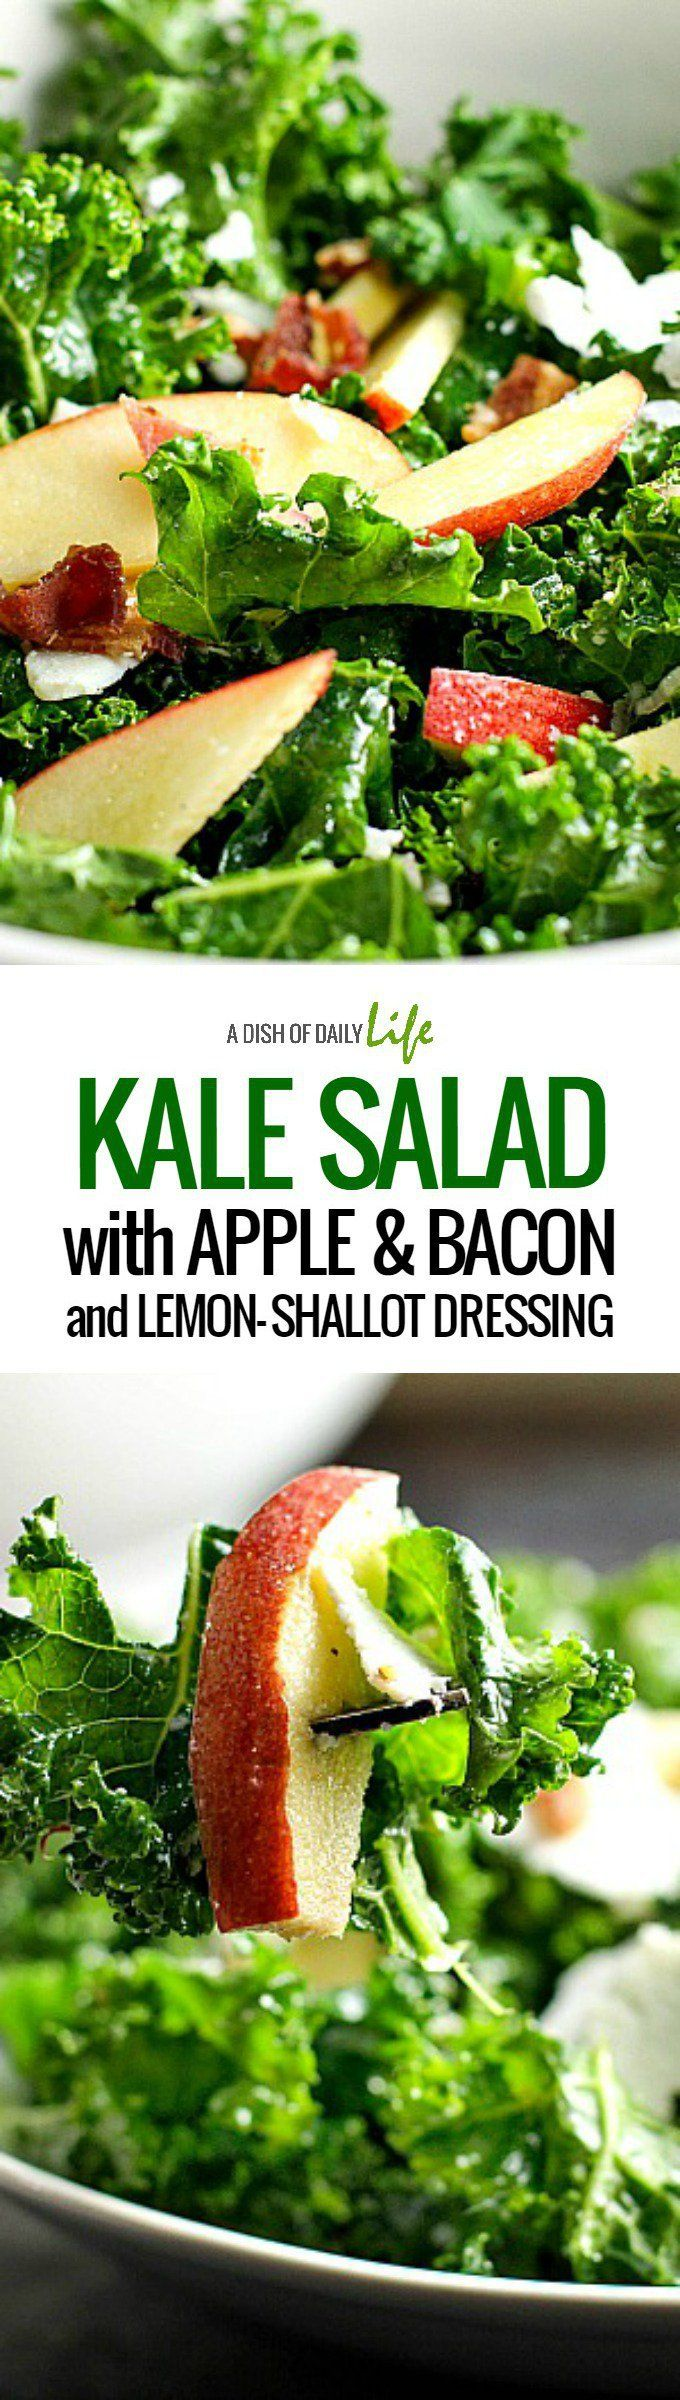 Kale Salad with Apple, Bacon and Lemon-Shallot Dressing...a hearty salad packed with flavor!